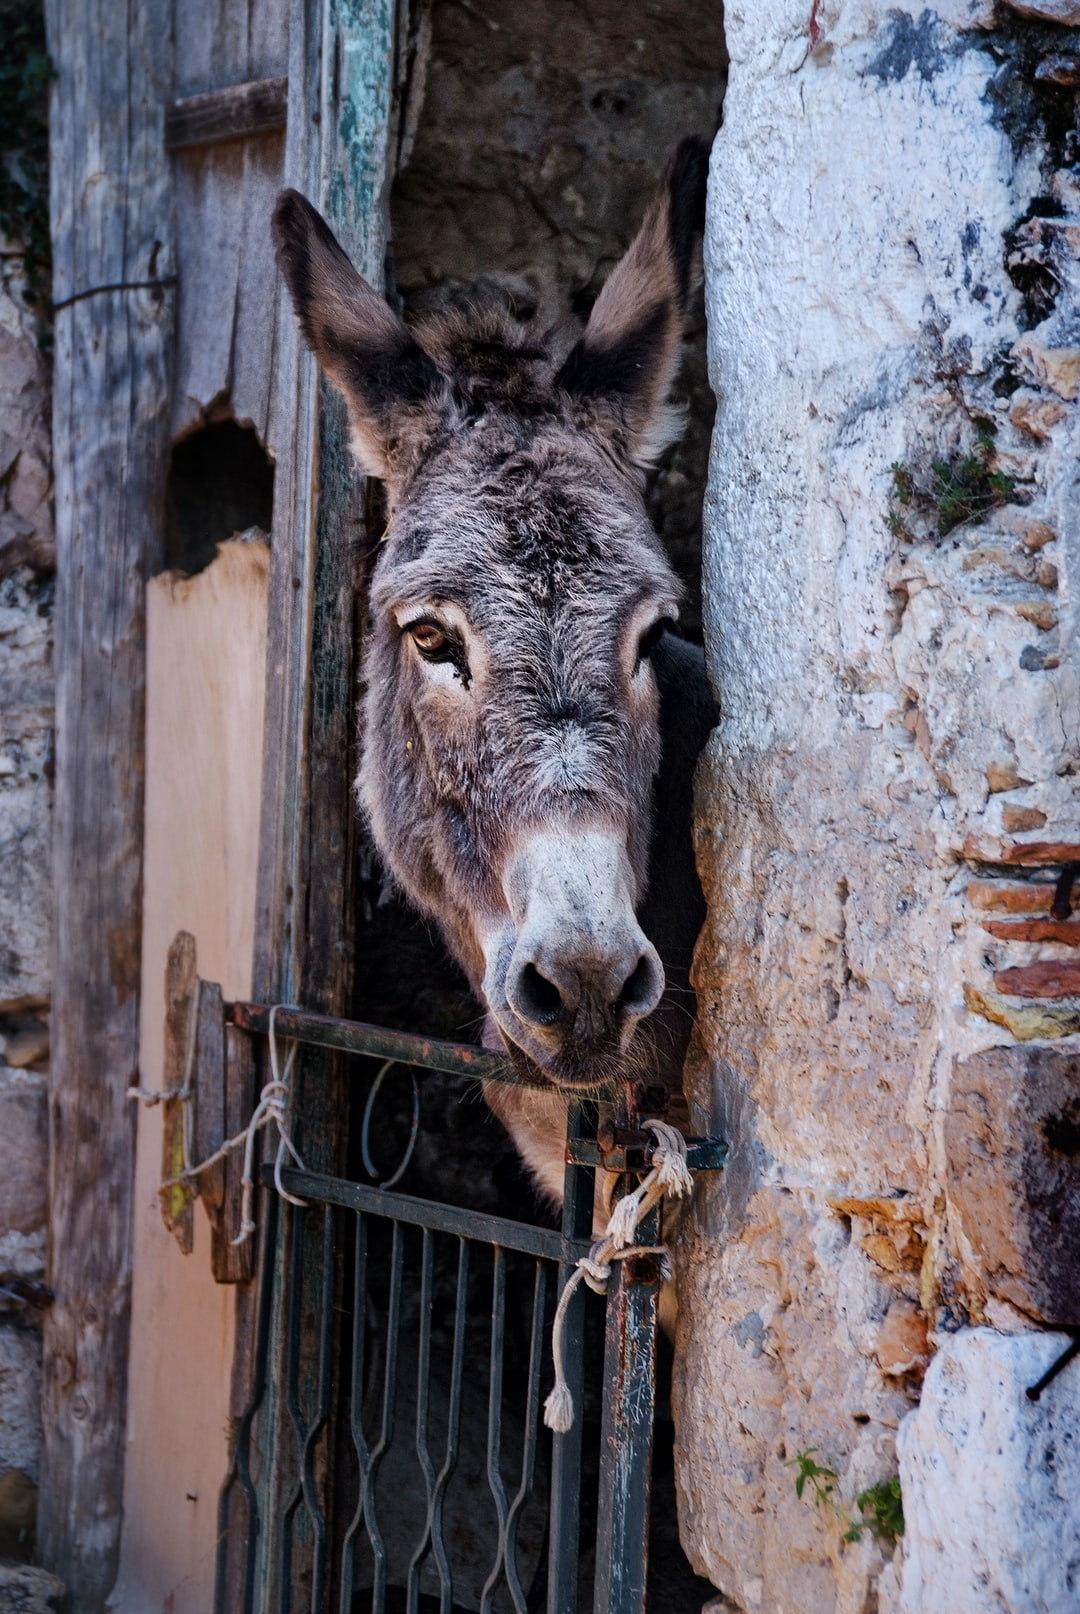 On island Mljet donkeys are becoming rare animals. So when You find one it is obligatory to take a photo.